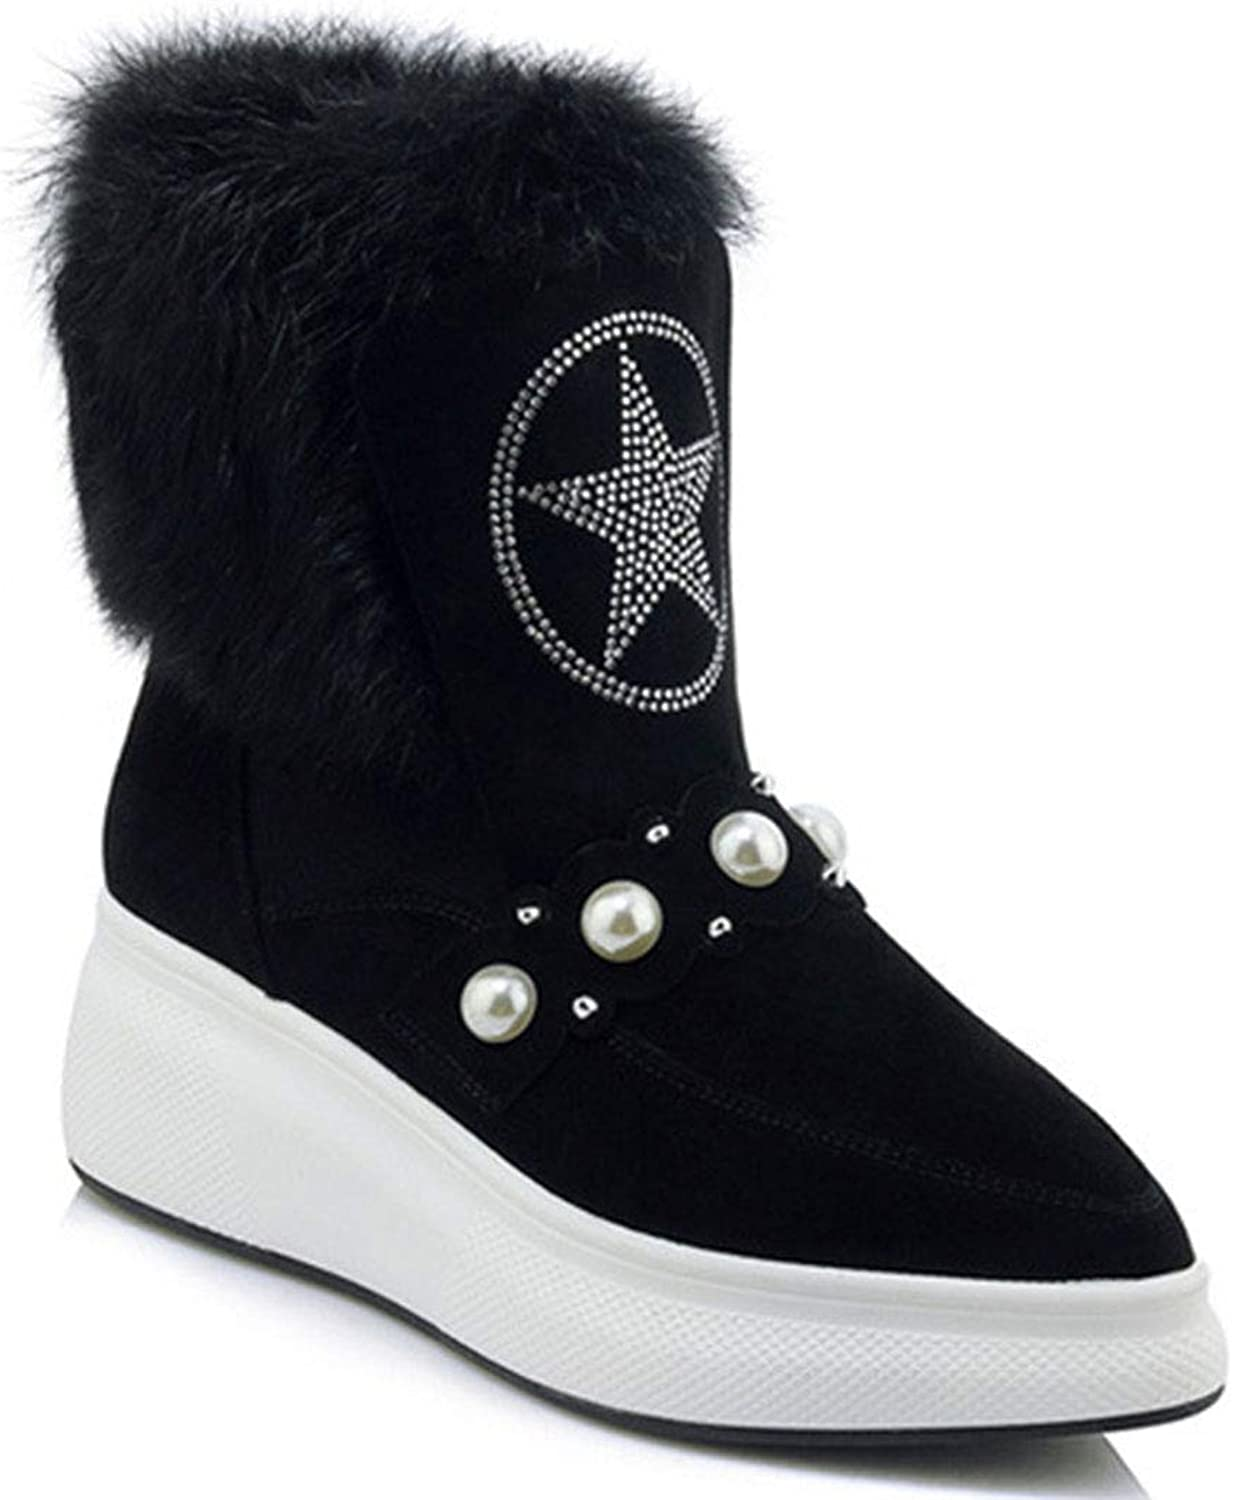 Women's Winter Snow Boots Leather Pointed Wedge Heel Boots Pearl Decorative Fluff Waterproof Platform Casual Fashion Boots